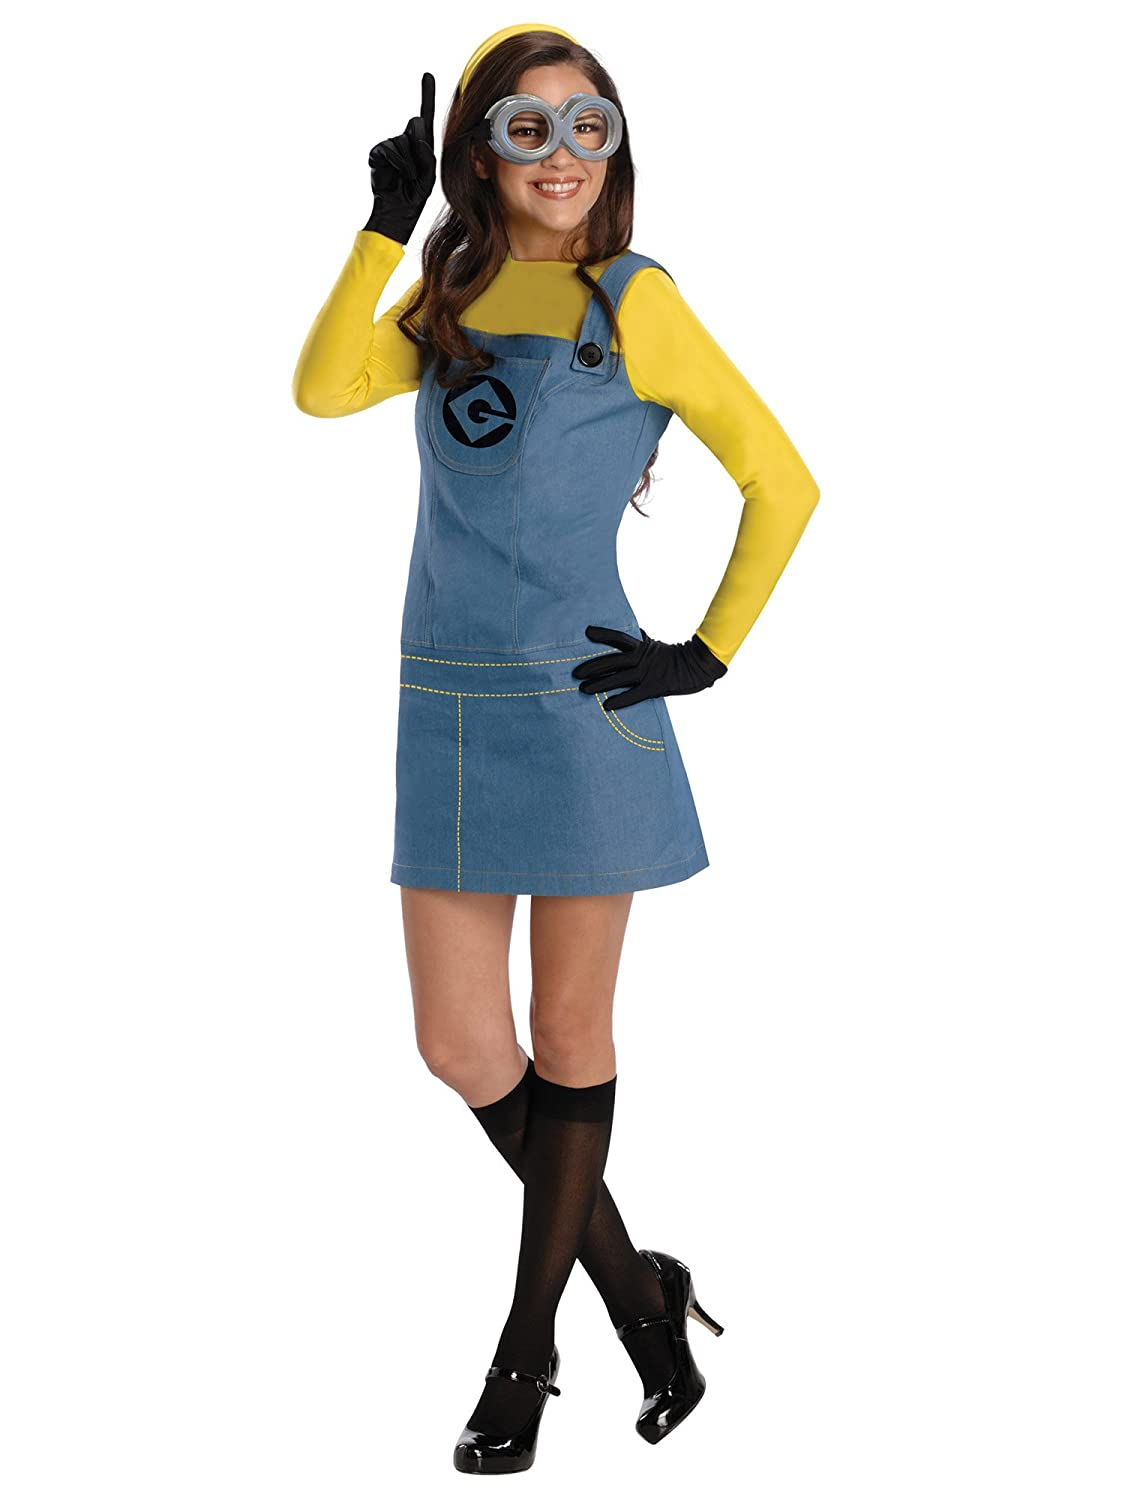 Rubie's Women's Despicable Me 2 Minion Costume with Accessories Secret Wishes